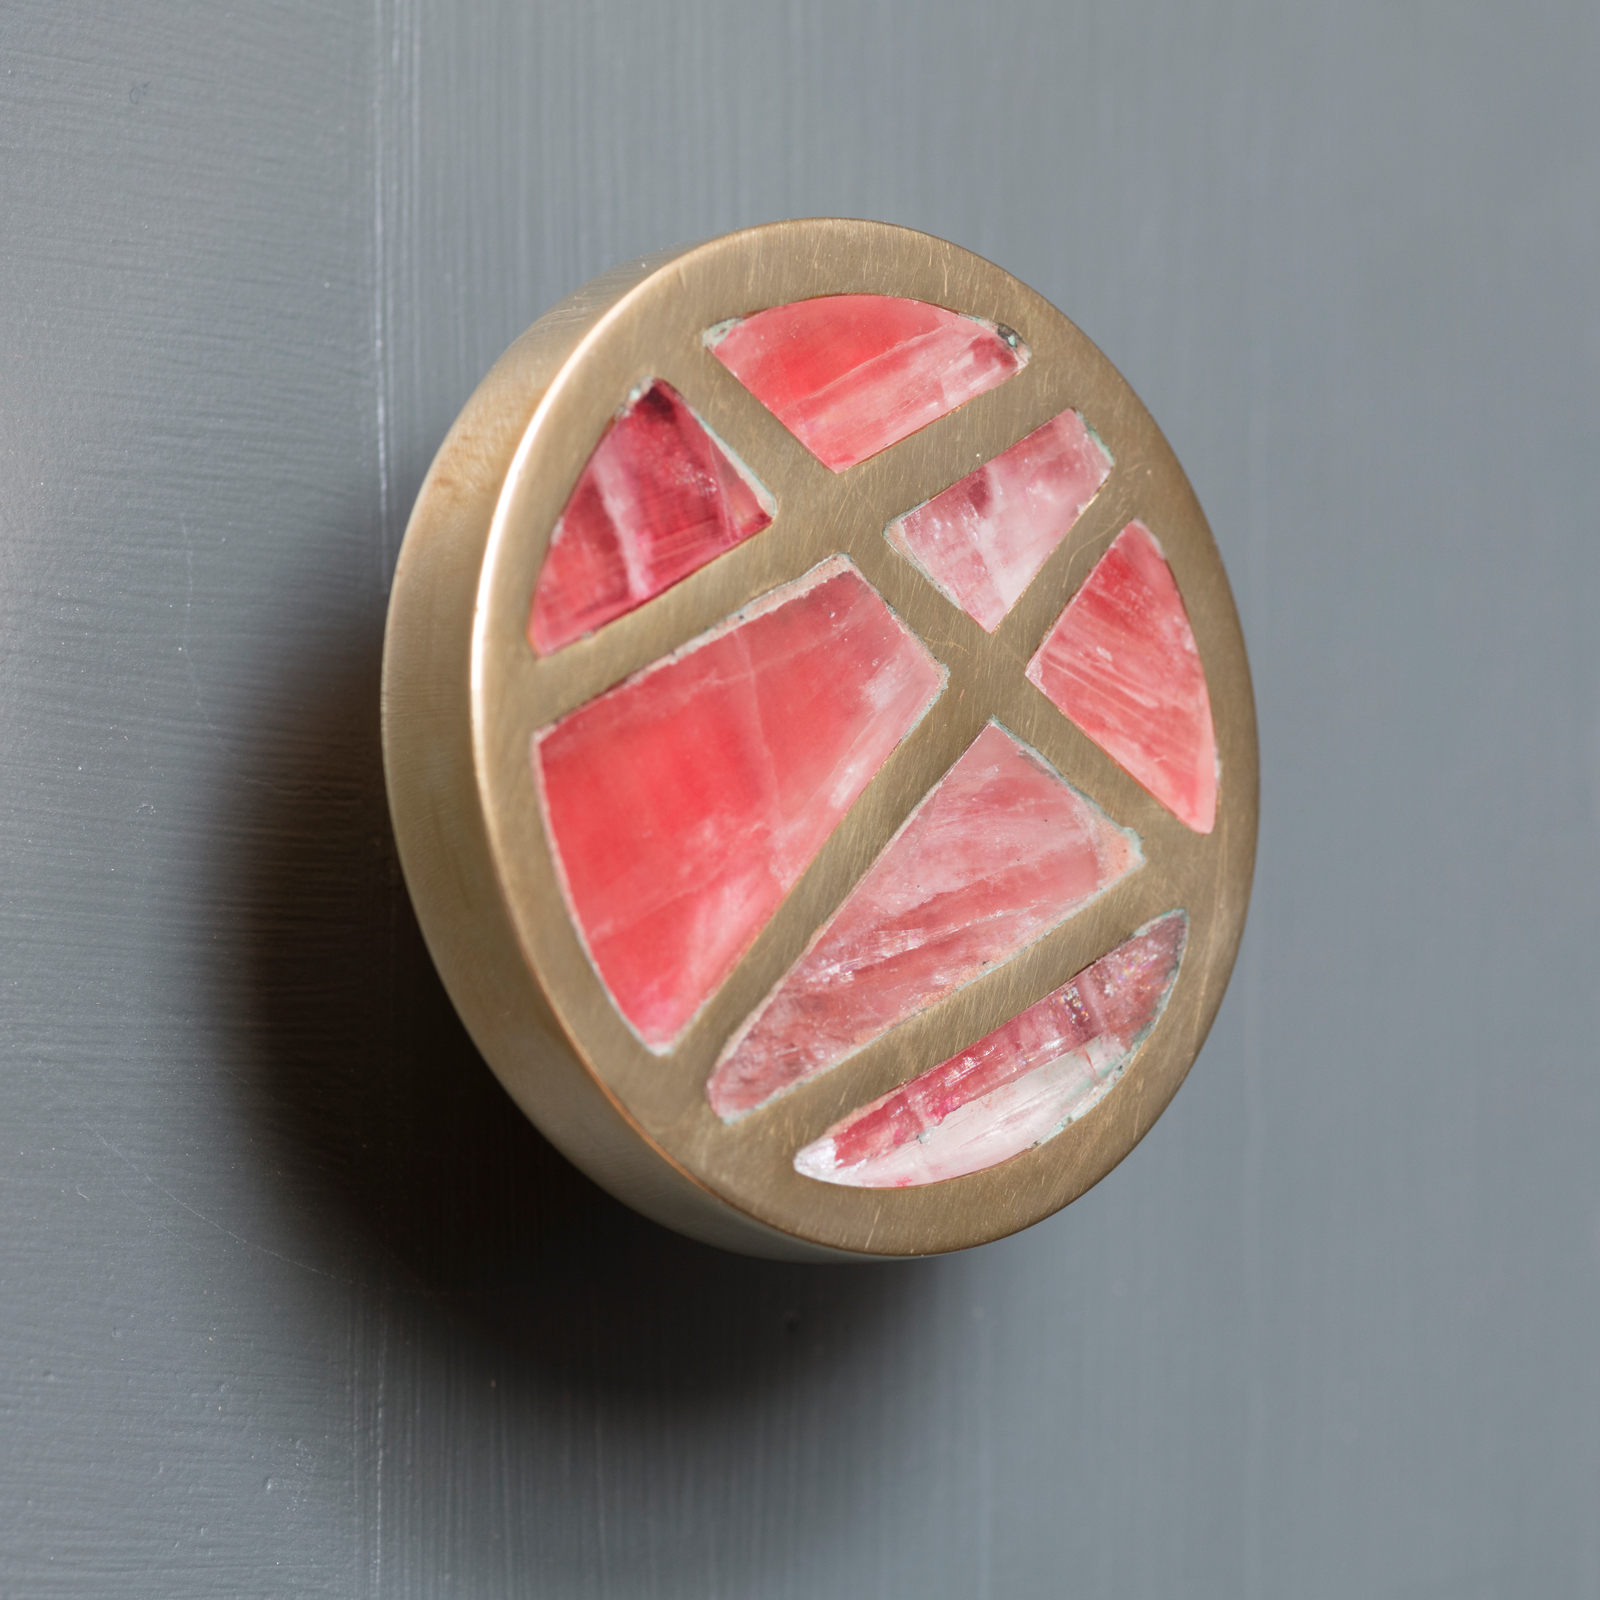 'Emily' handle made bespoke for The Pink House by KOHR